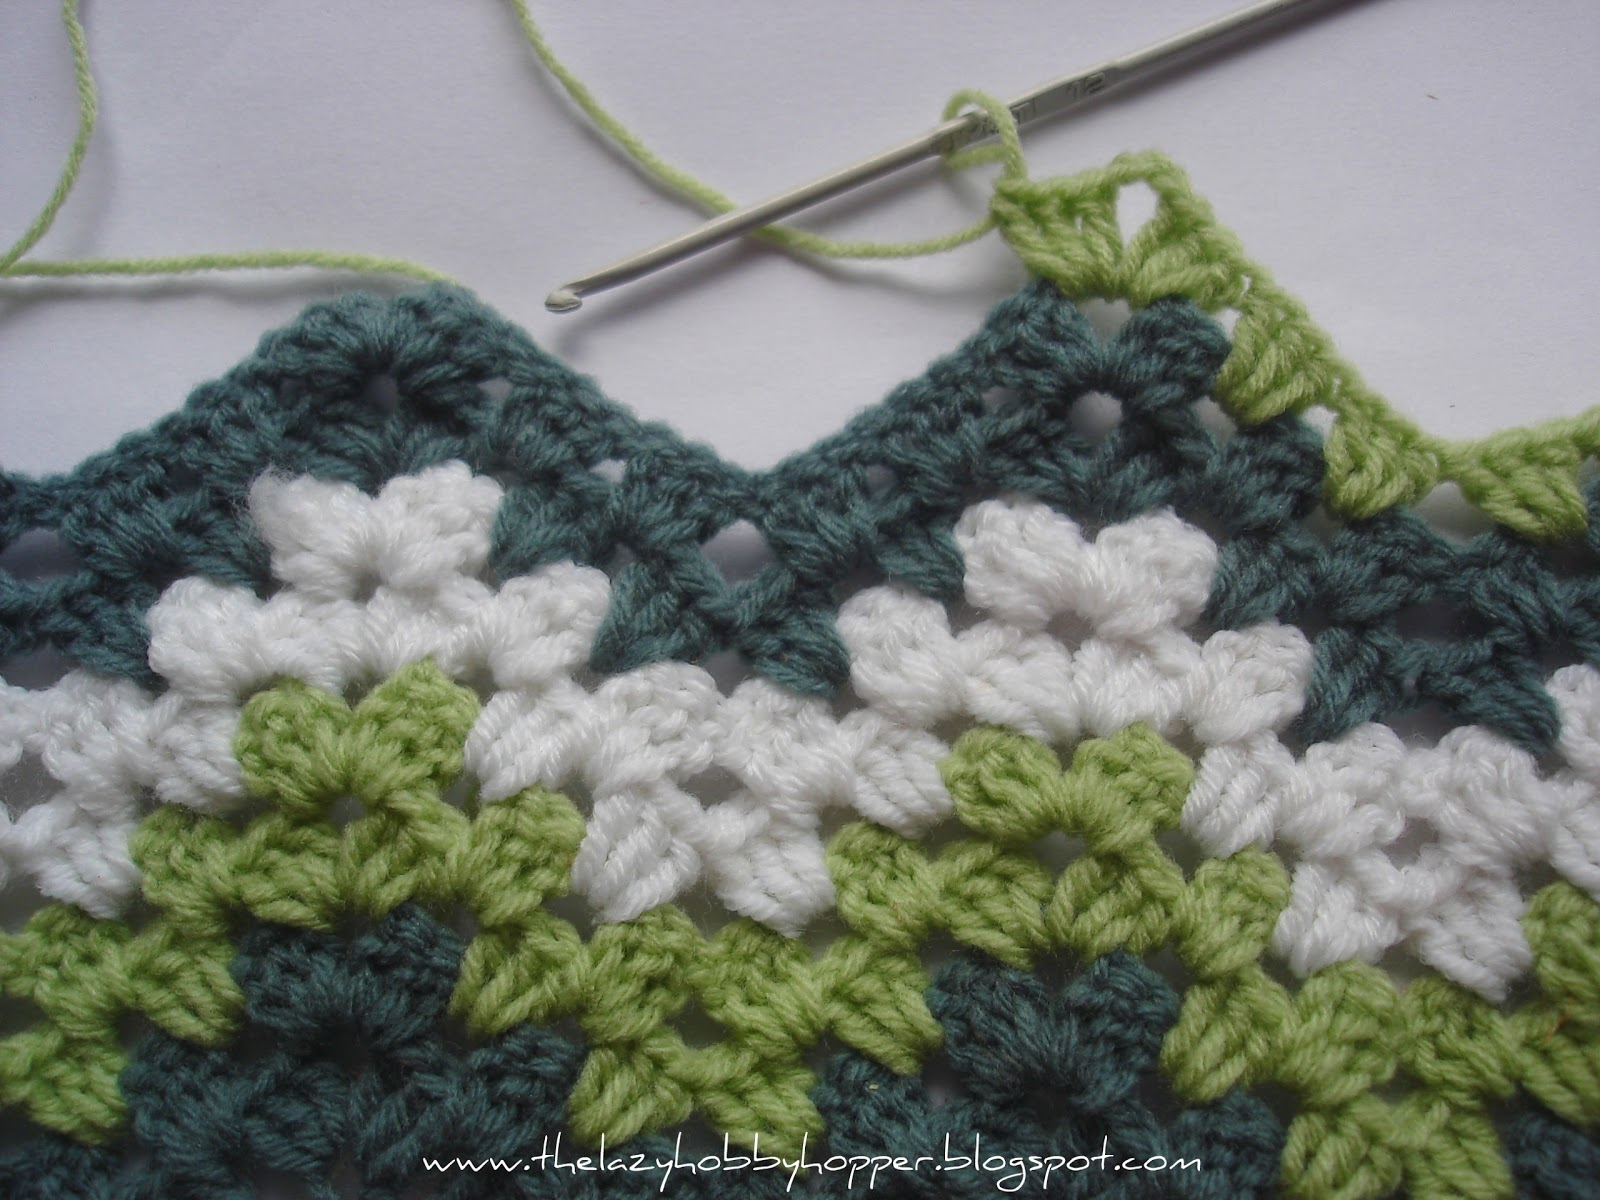 Crochet Videos : ... many of you who can crochet fairly well may not know how to crochet a